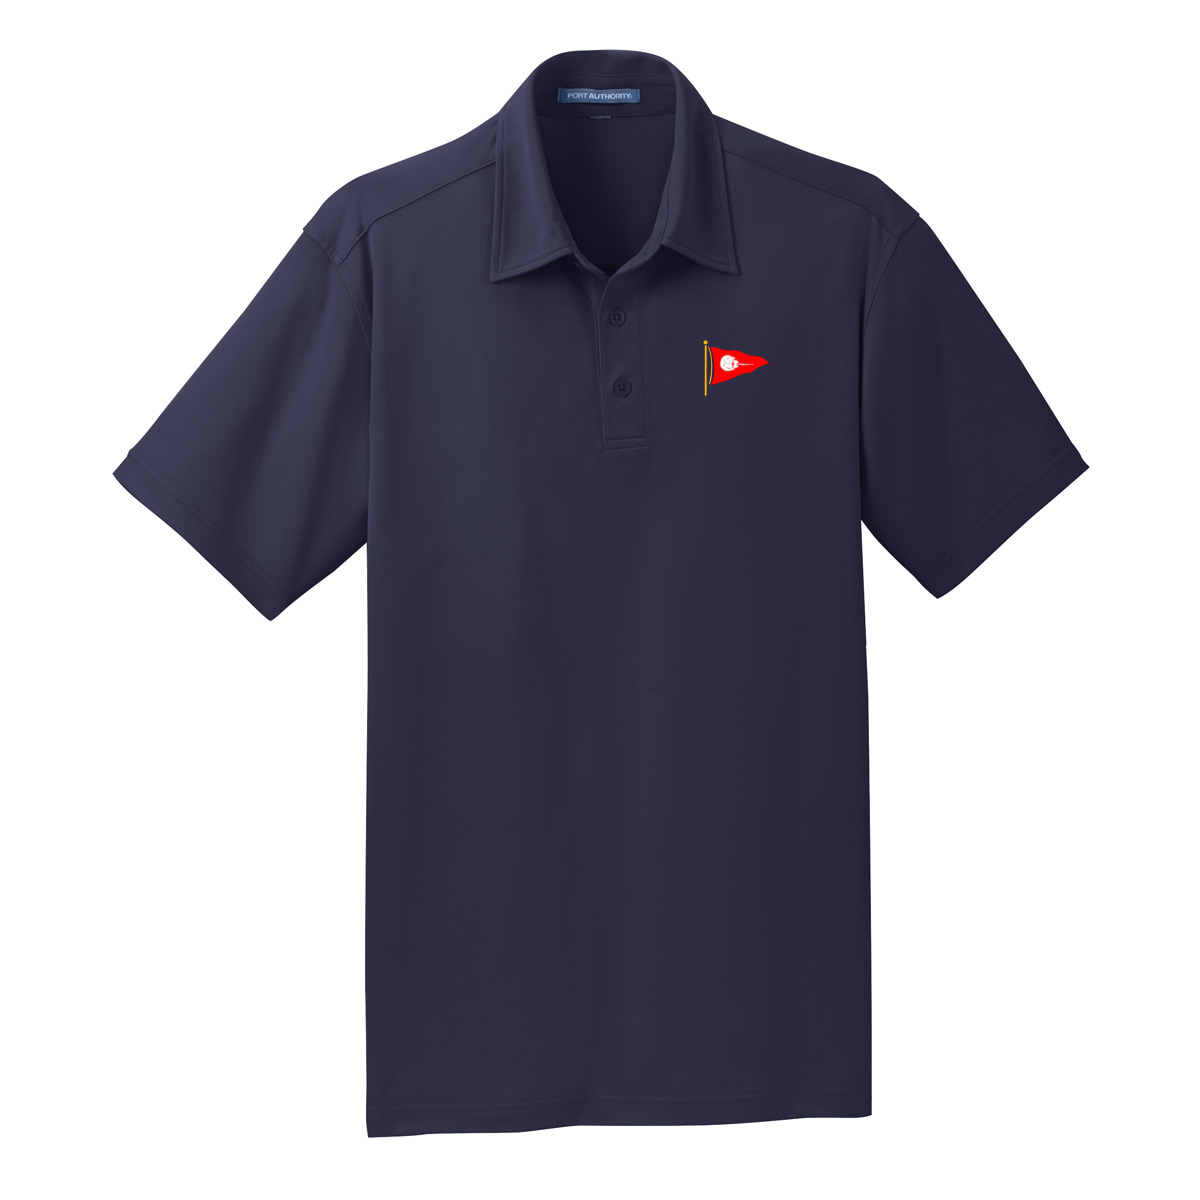 SHYC -  MEN'S TECH POLO